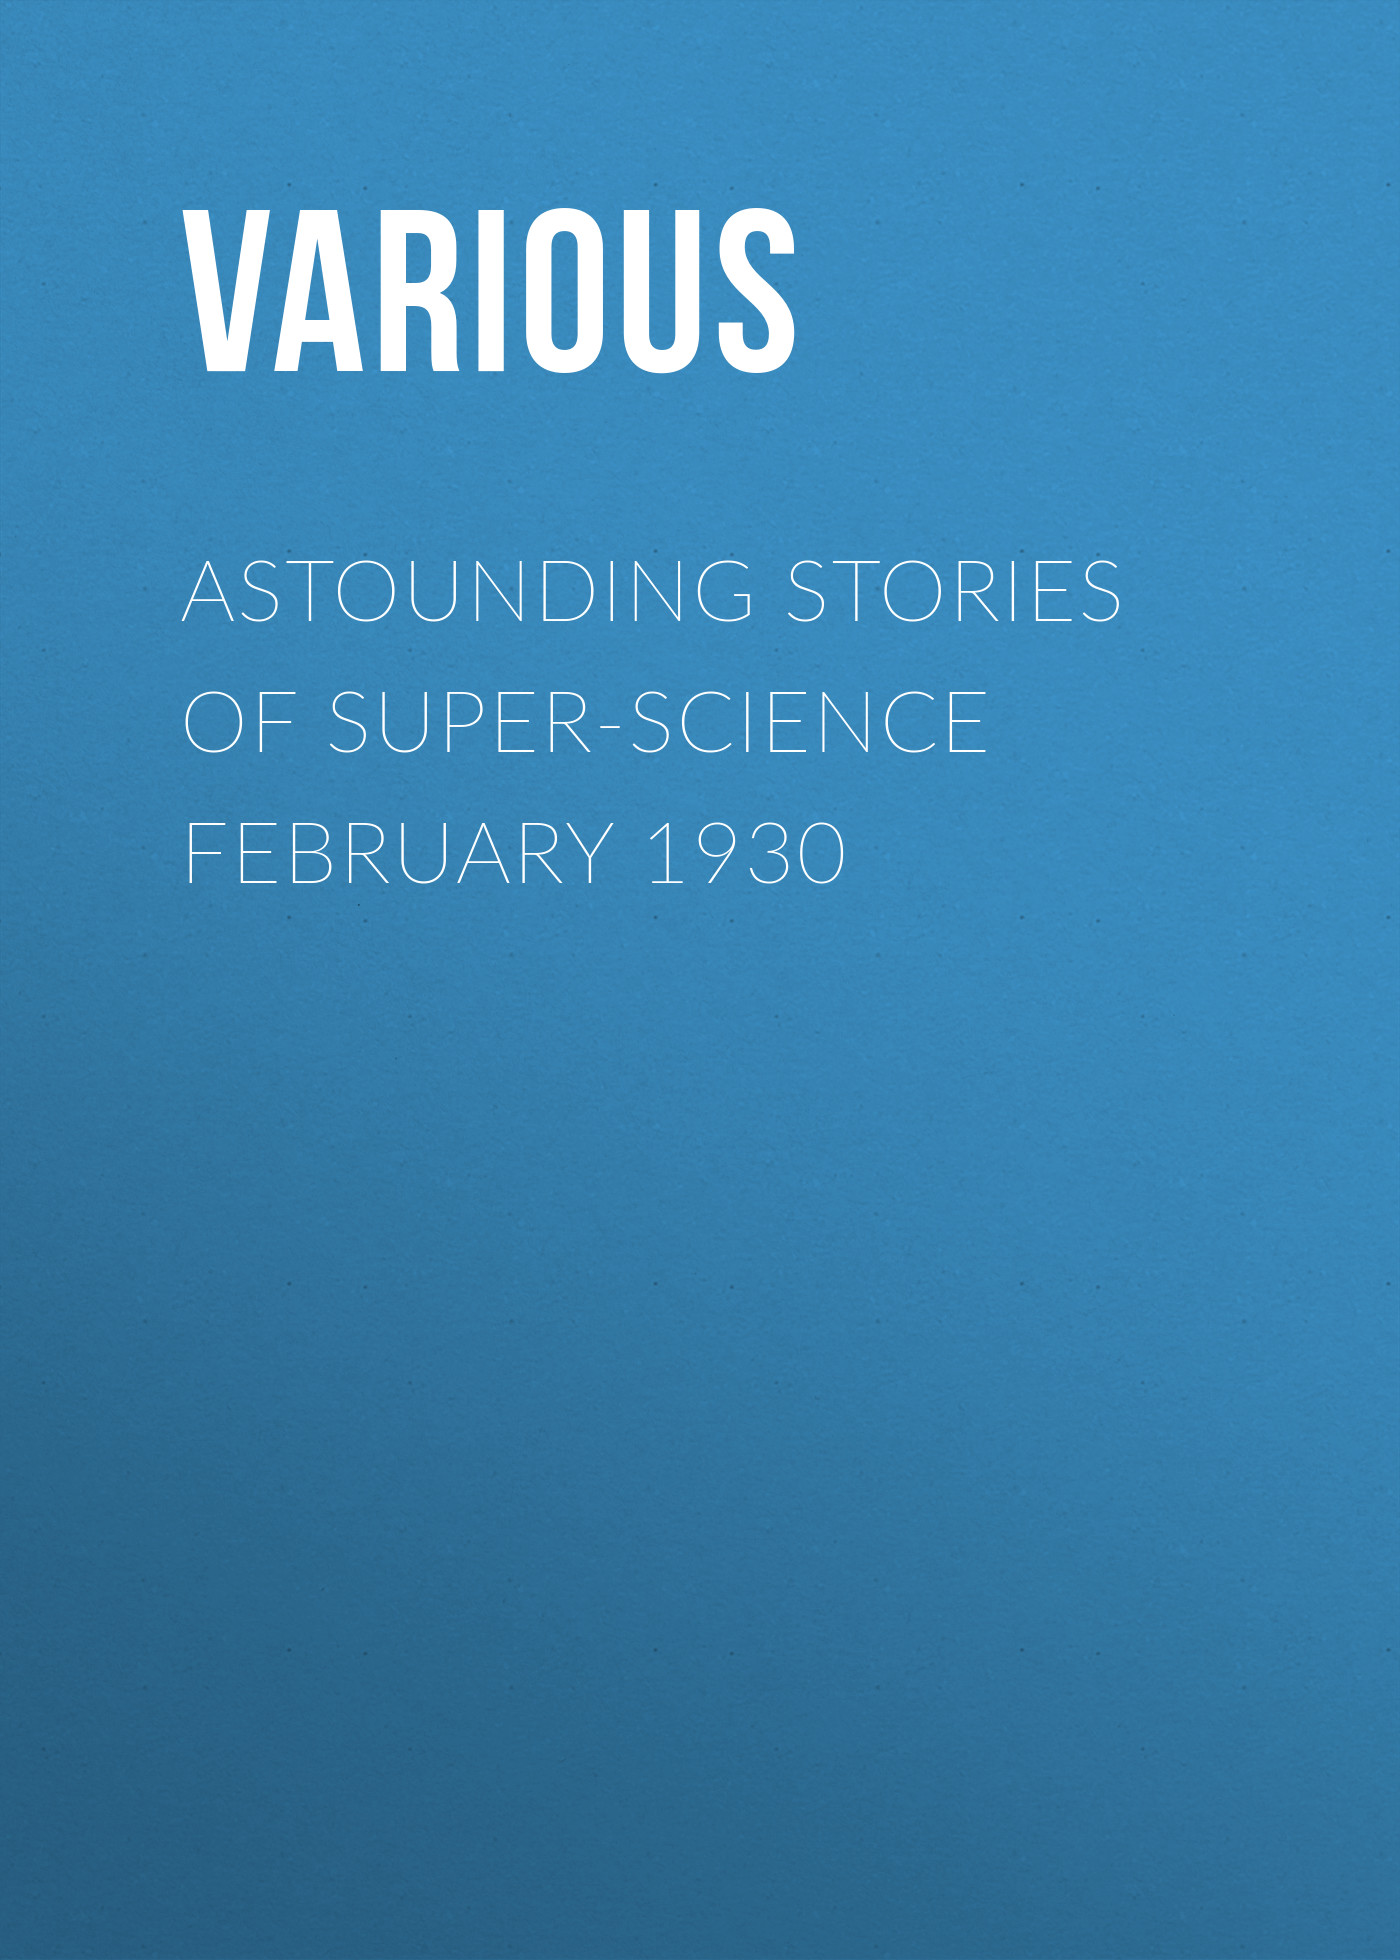 Various Astounding Stories of Super-Science February 1930